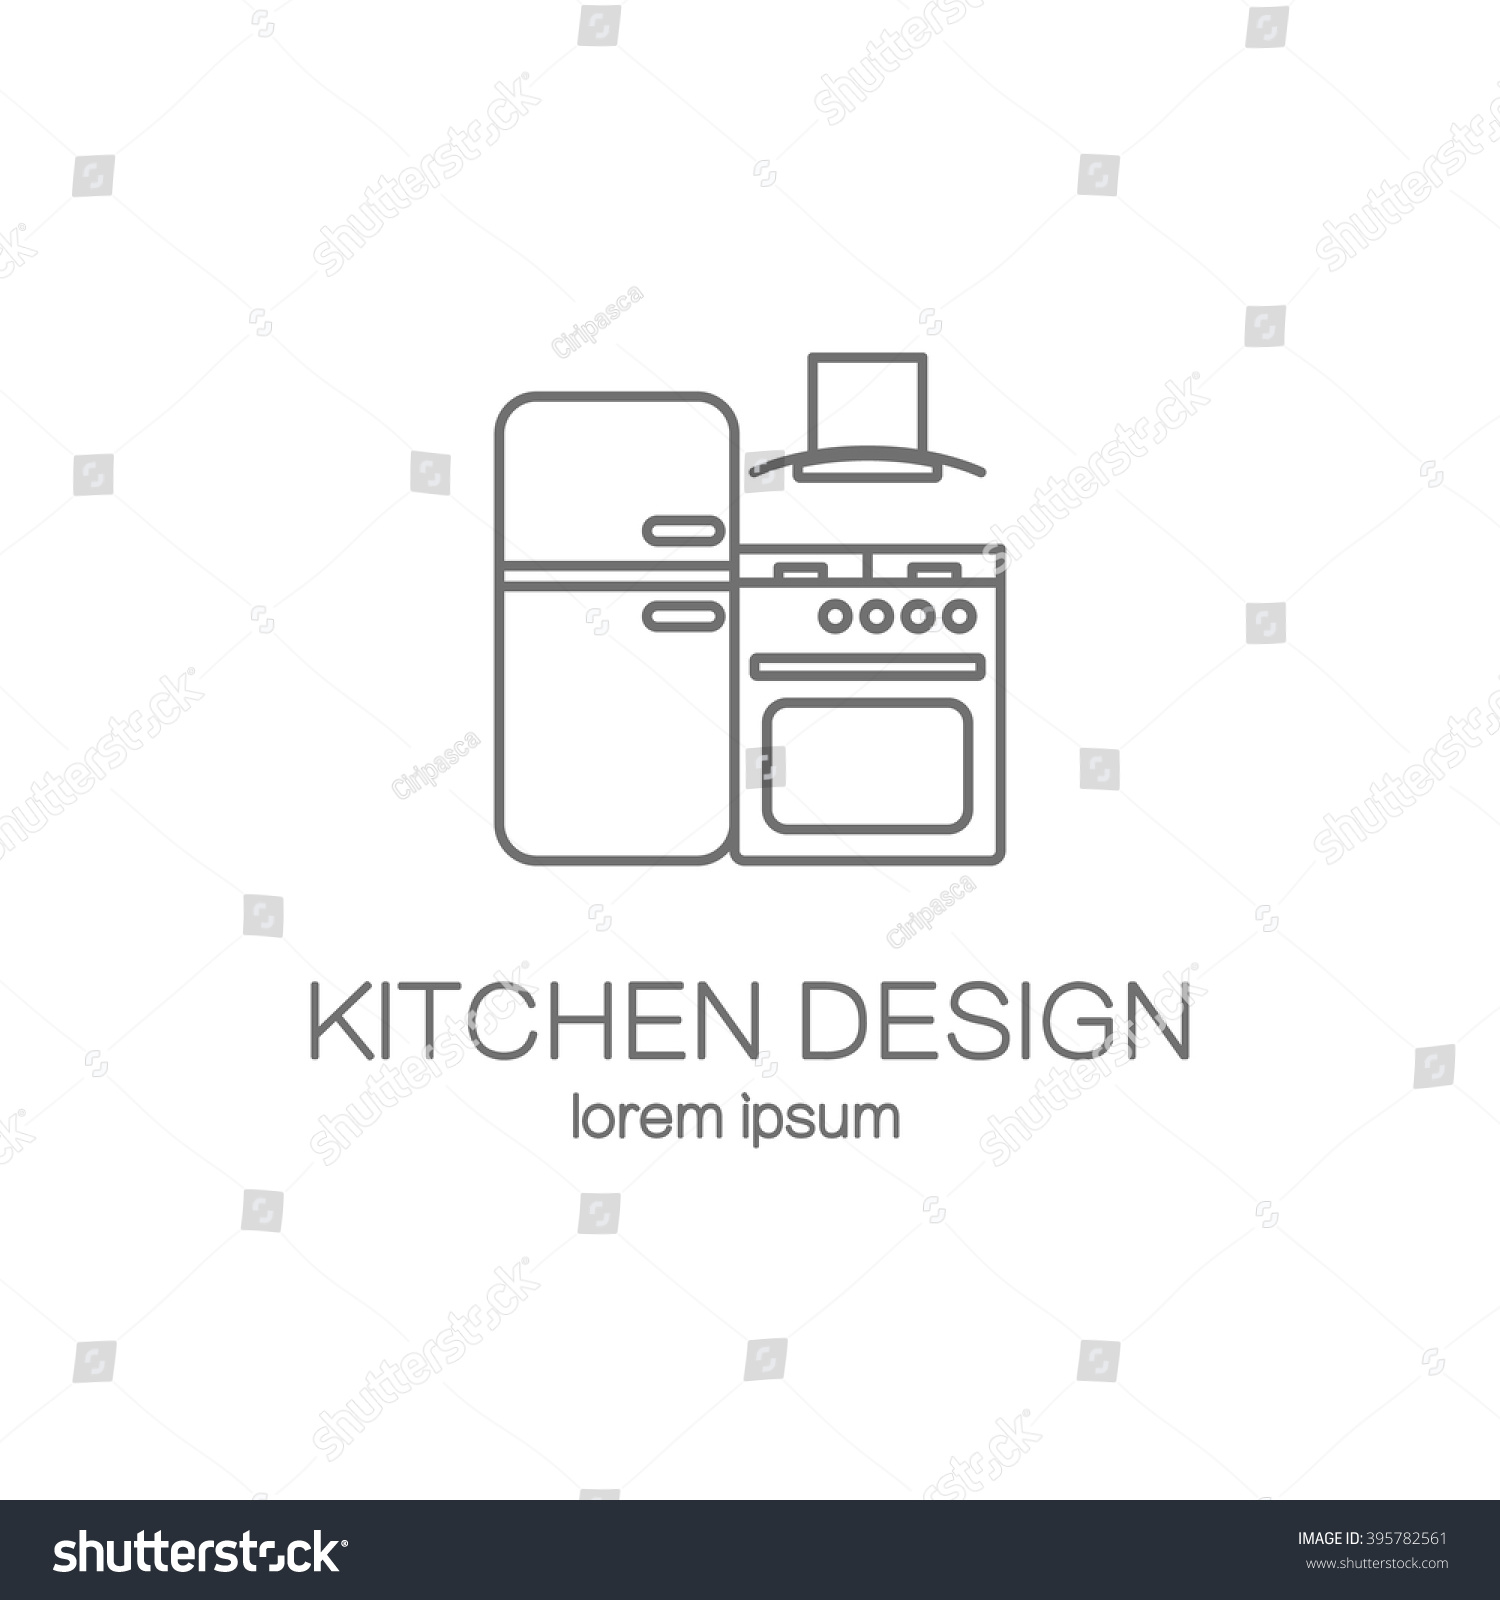 Icon kitchen design for Kitchen decoration logo